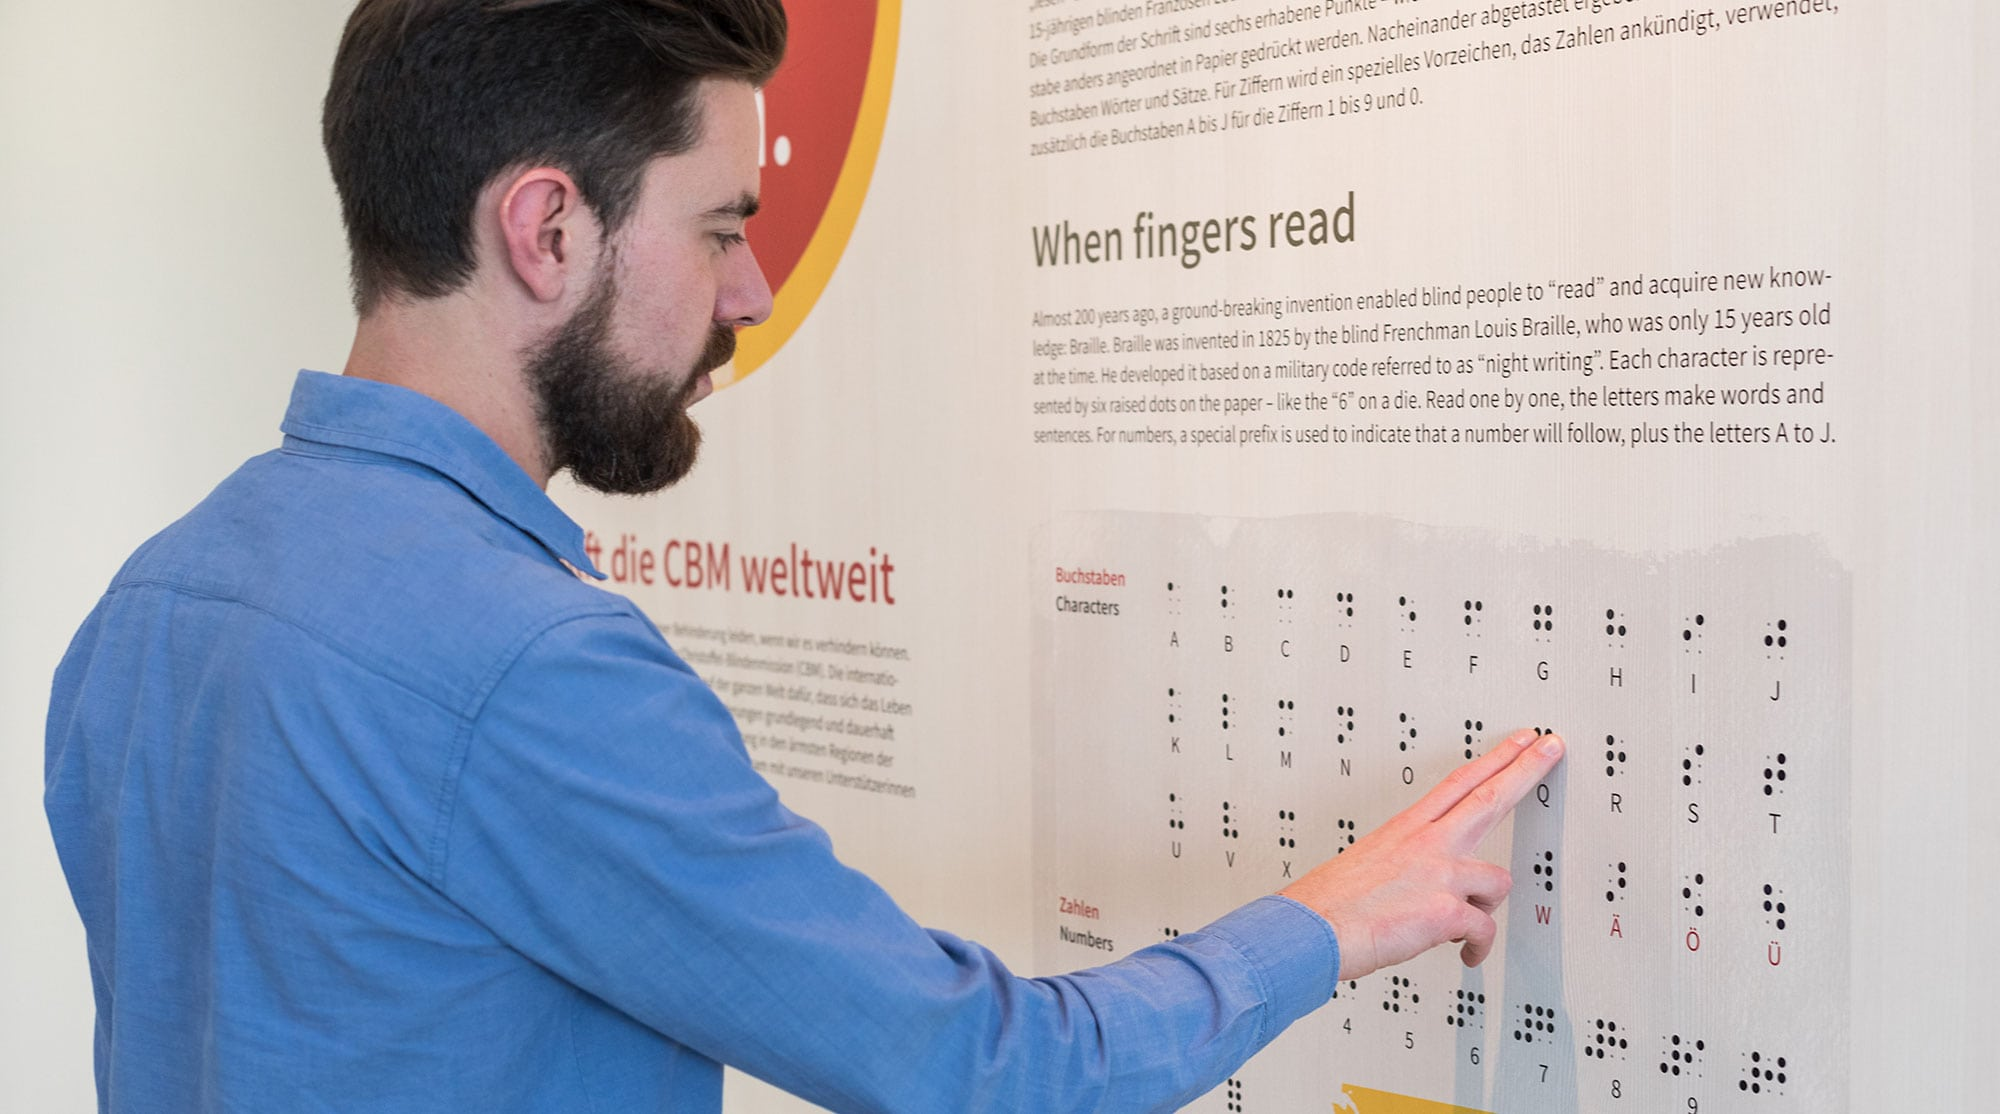 Visitor palpates braille script to understand work of CBM